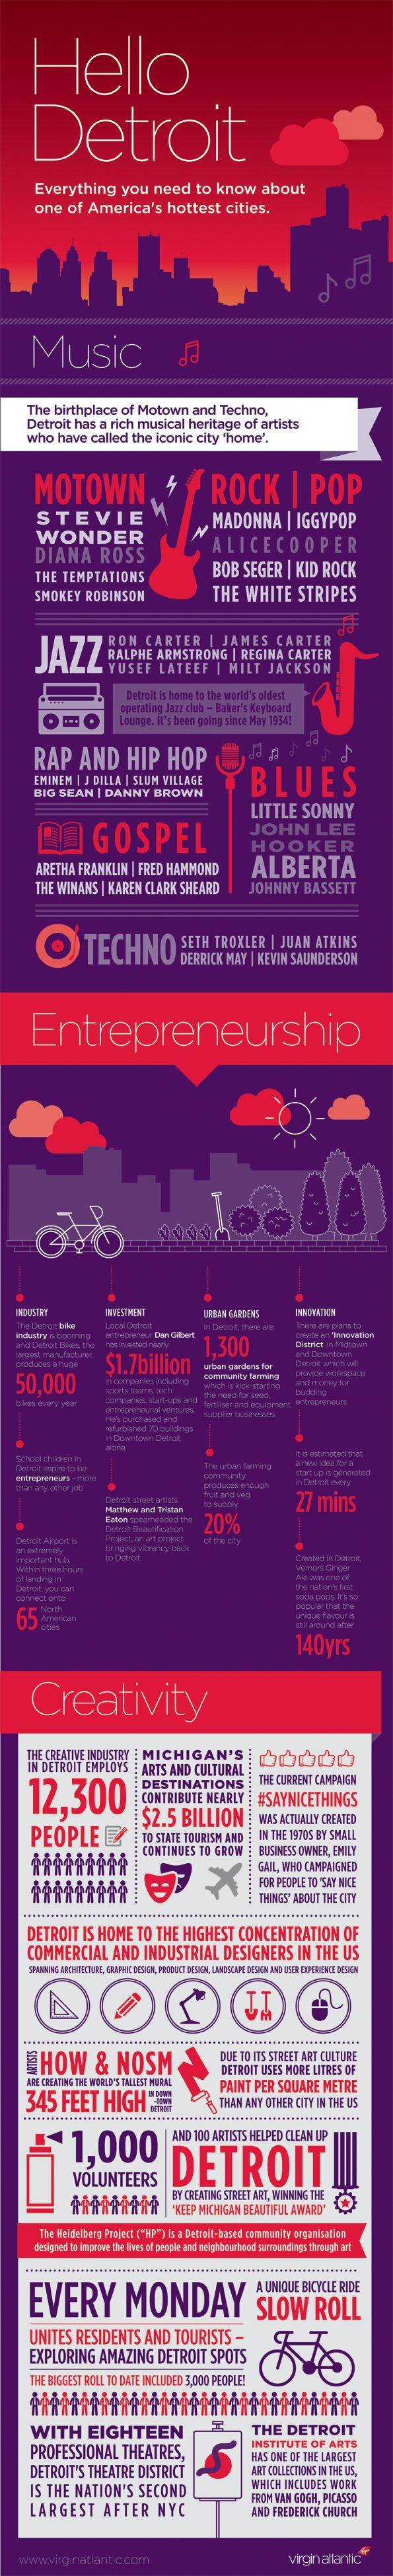 Virgin Atlantic highlights Detroit in this awesome infographic.